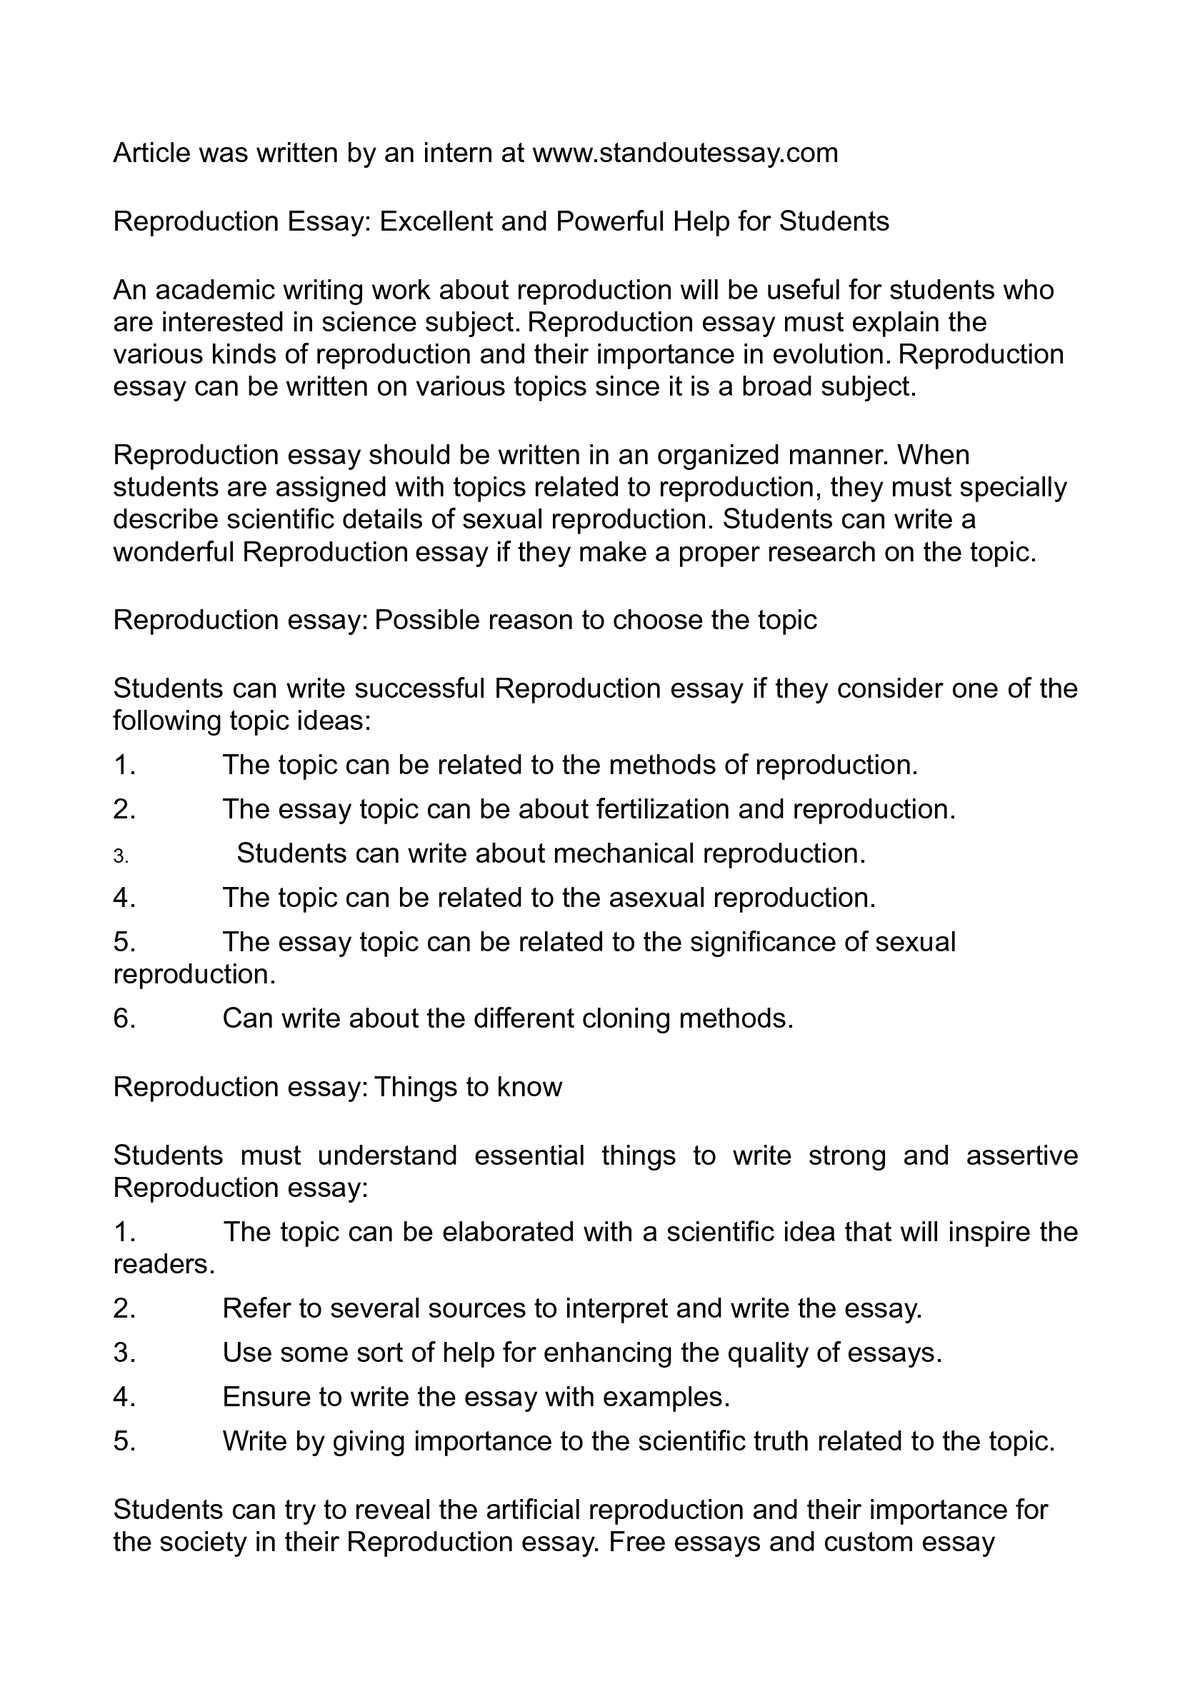 Essay On Library In English  From Thesis To Essay Writing also Is Psychology A Science Essay Calamo  Reproduction Essay Excellent And Powerful Help For Students Diwali Essay In English